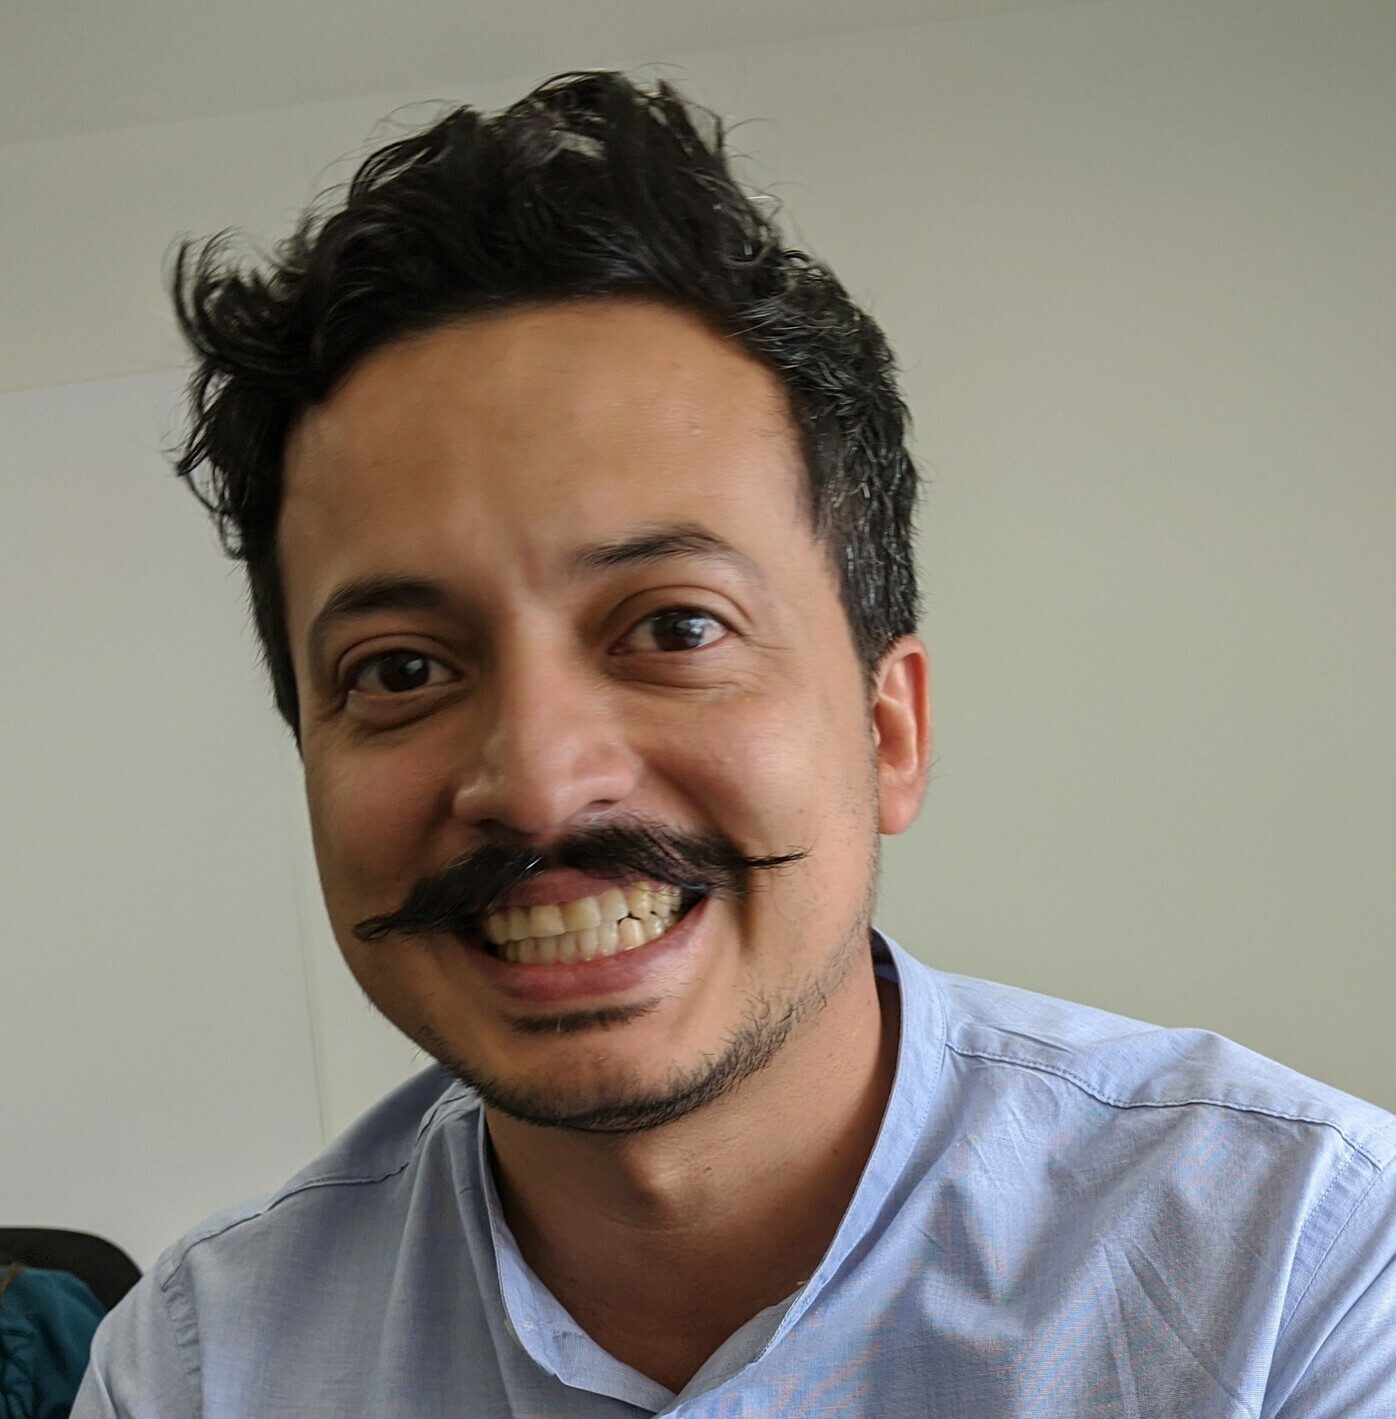 "<p>Gabriel Castrillon<span style=""font-weight: normal;""> PostDoc</span></p>"